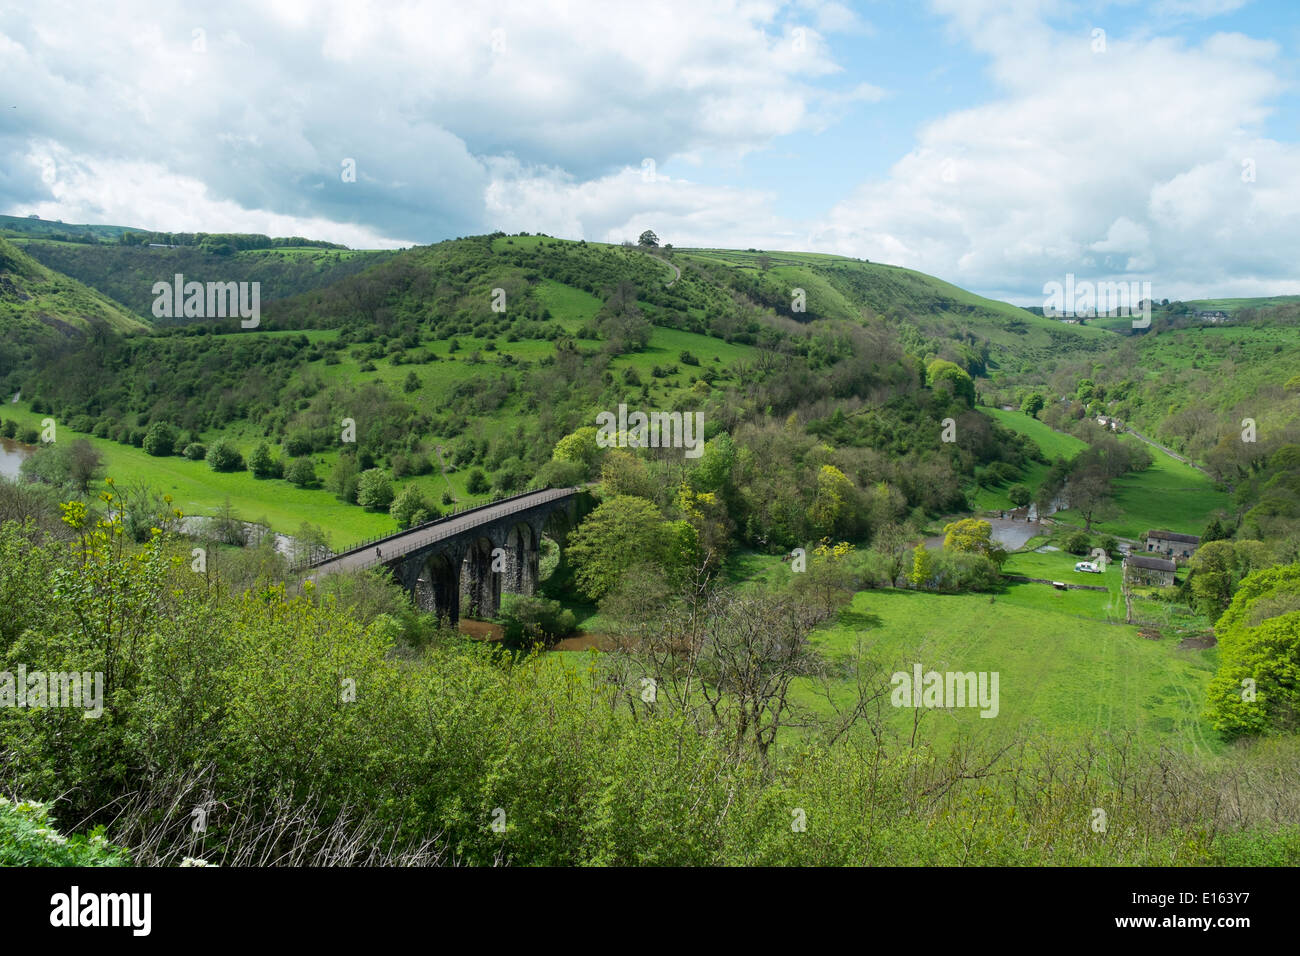 View of the Monsal Valley and viaduct, Peak District National Park, Derbyshire, England. - Stock Image